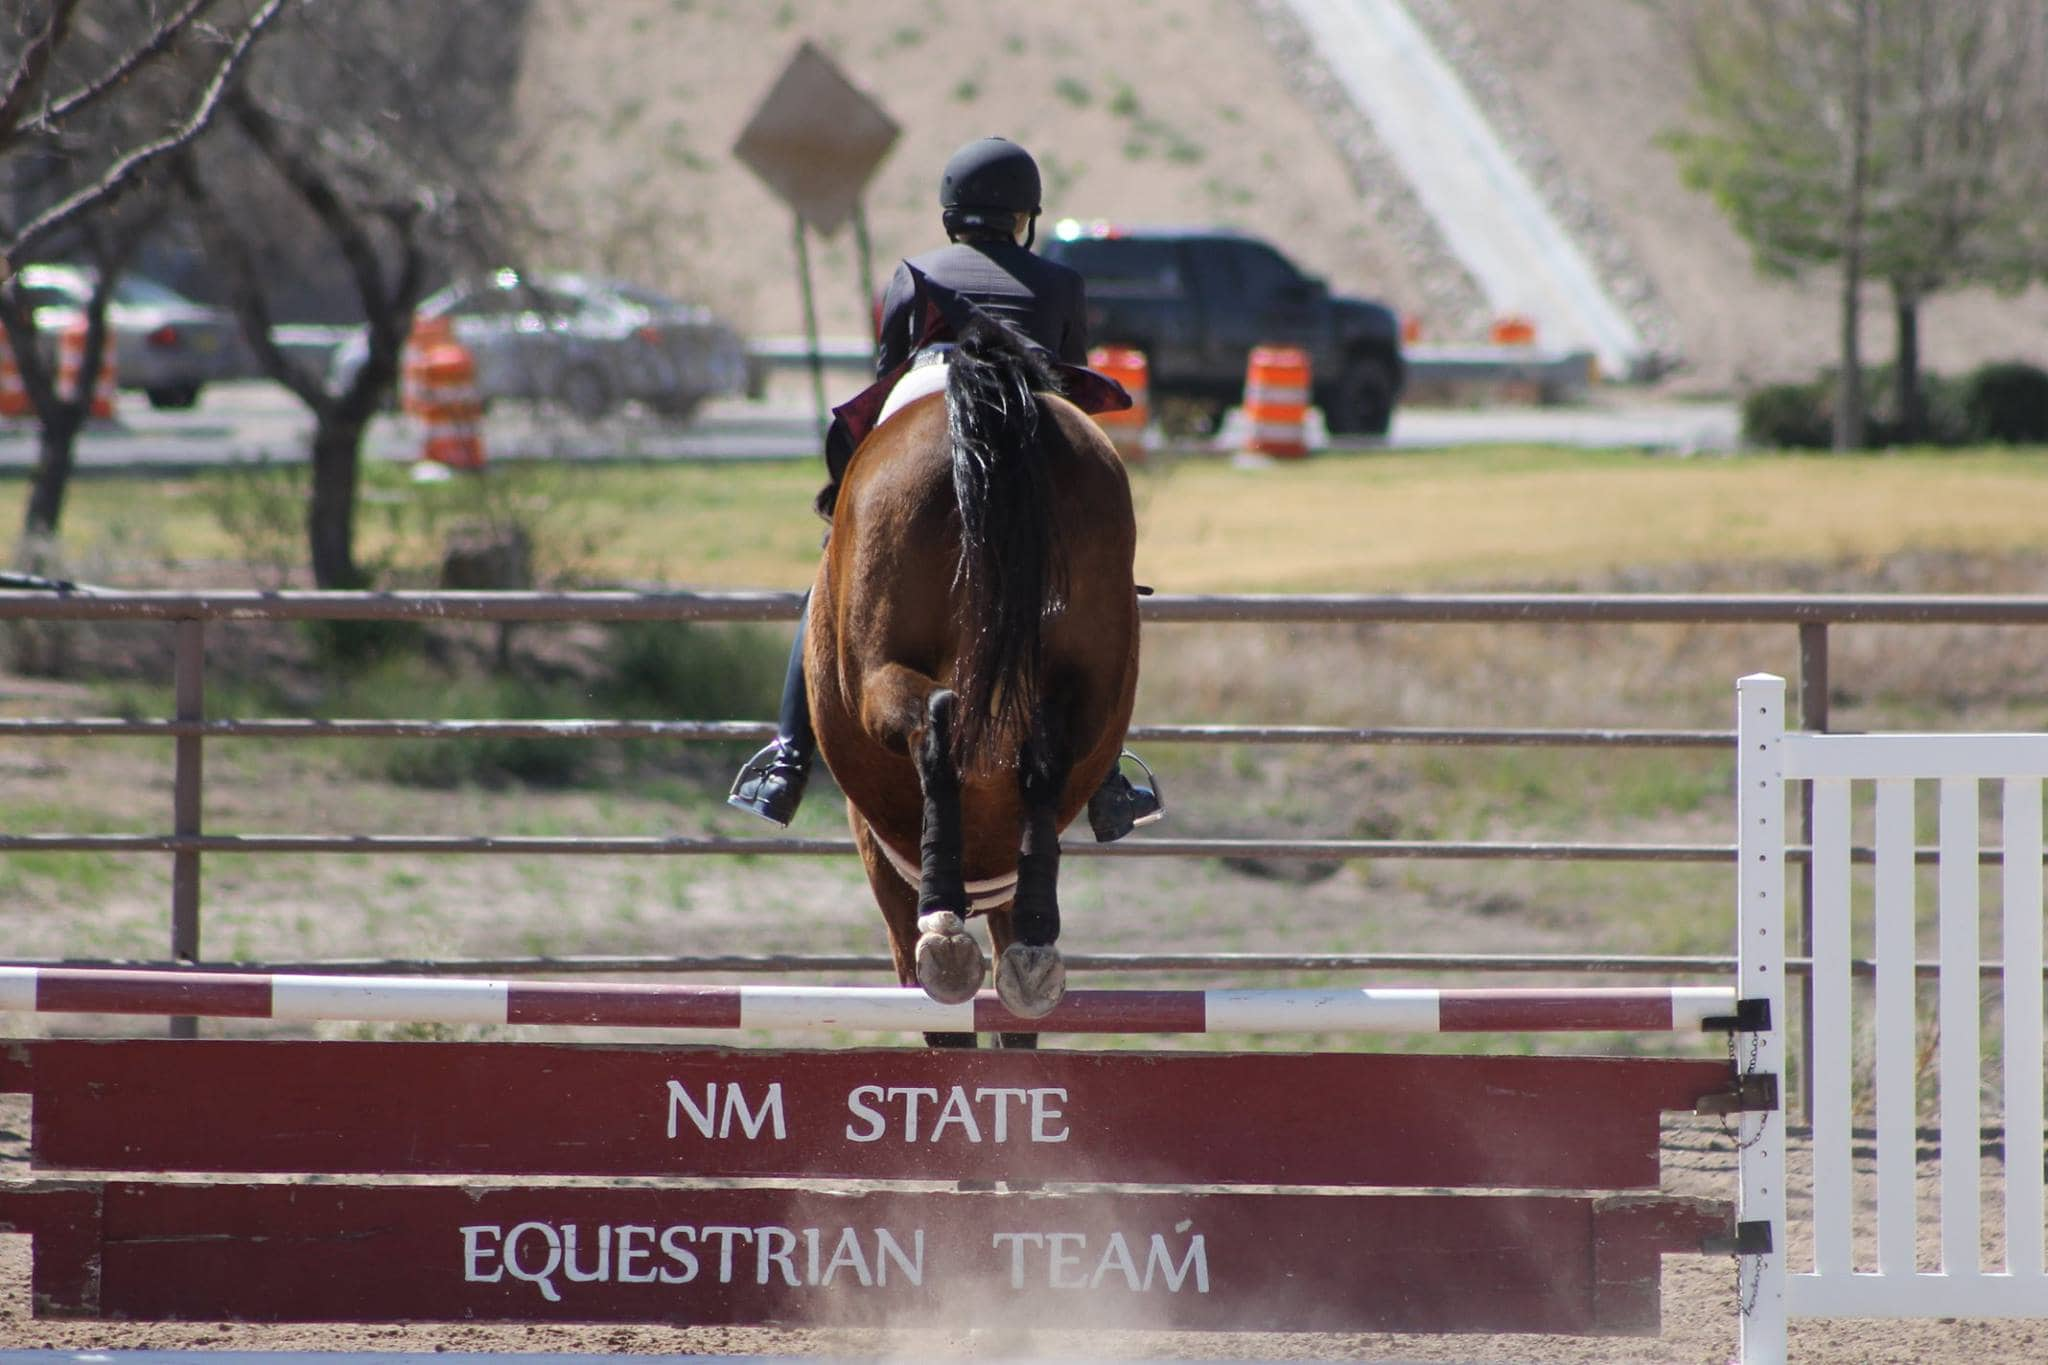 Ncaa Not Dropping Equestrian Program As Emerging Sport